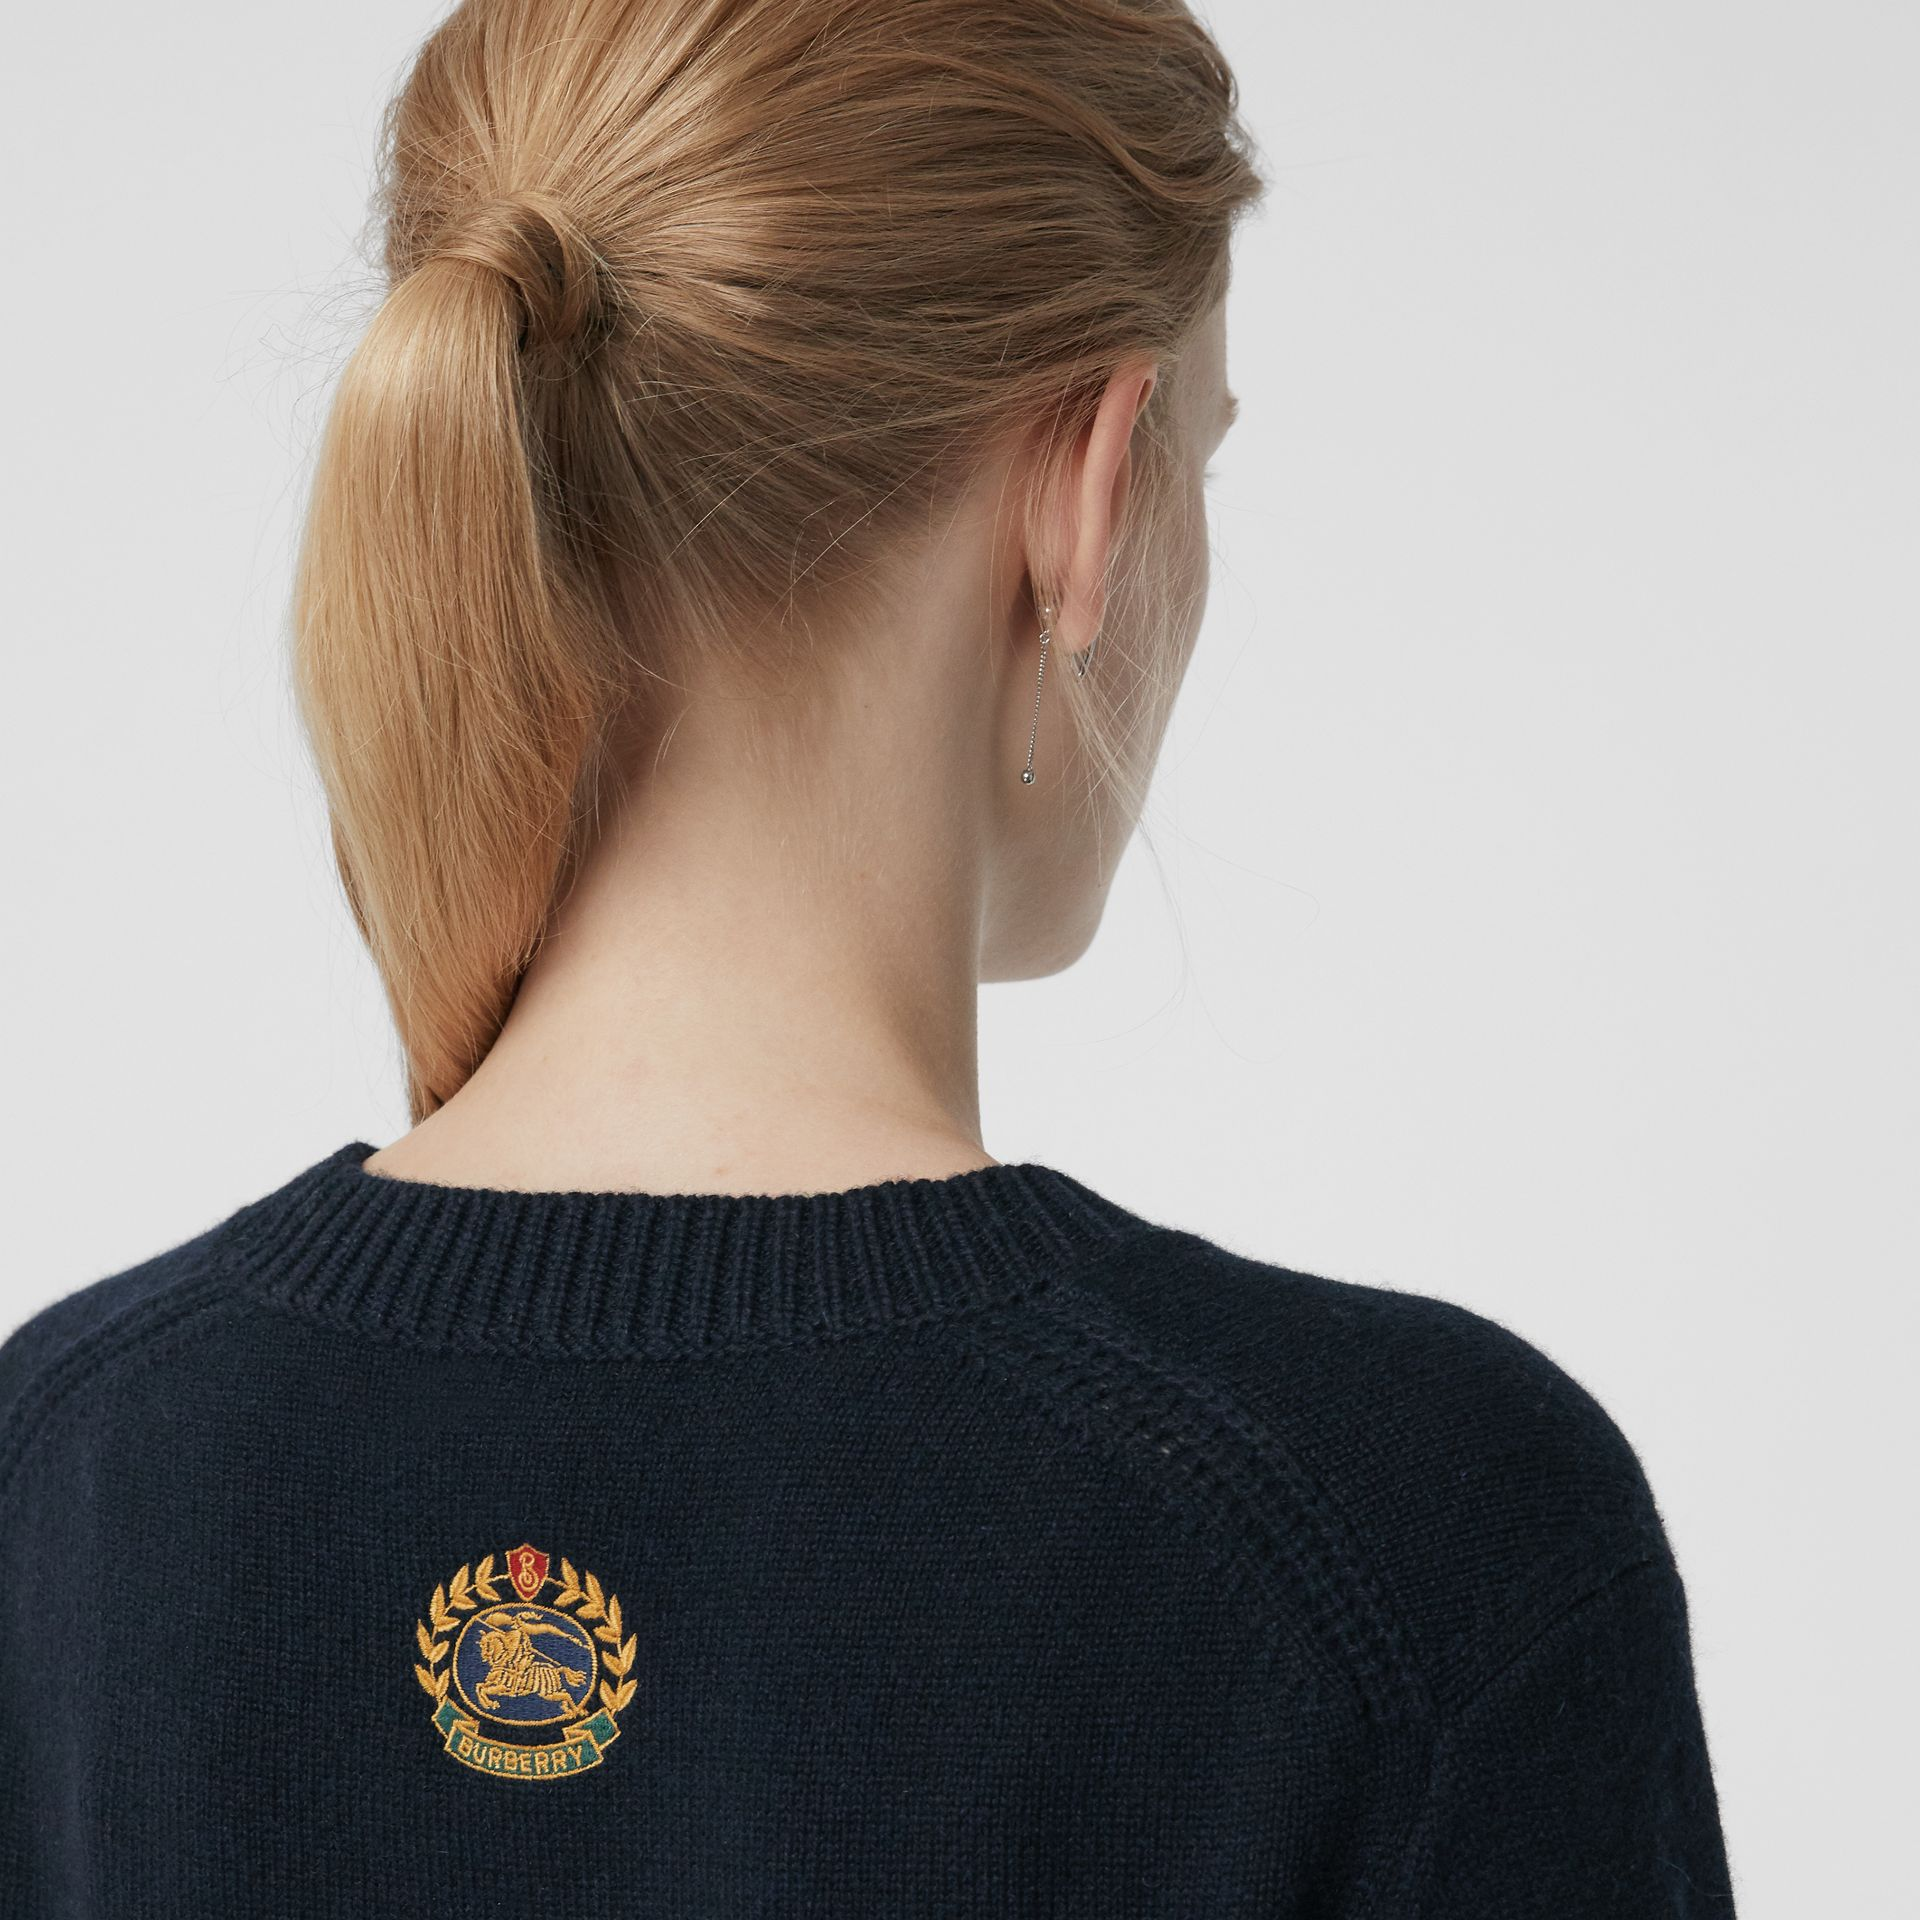 Archive Logo Appliqué Cashmere Sweater in Navy - Women | Burberry Canada - gallery image 1